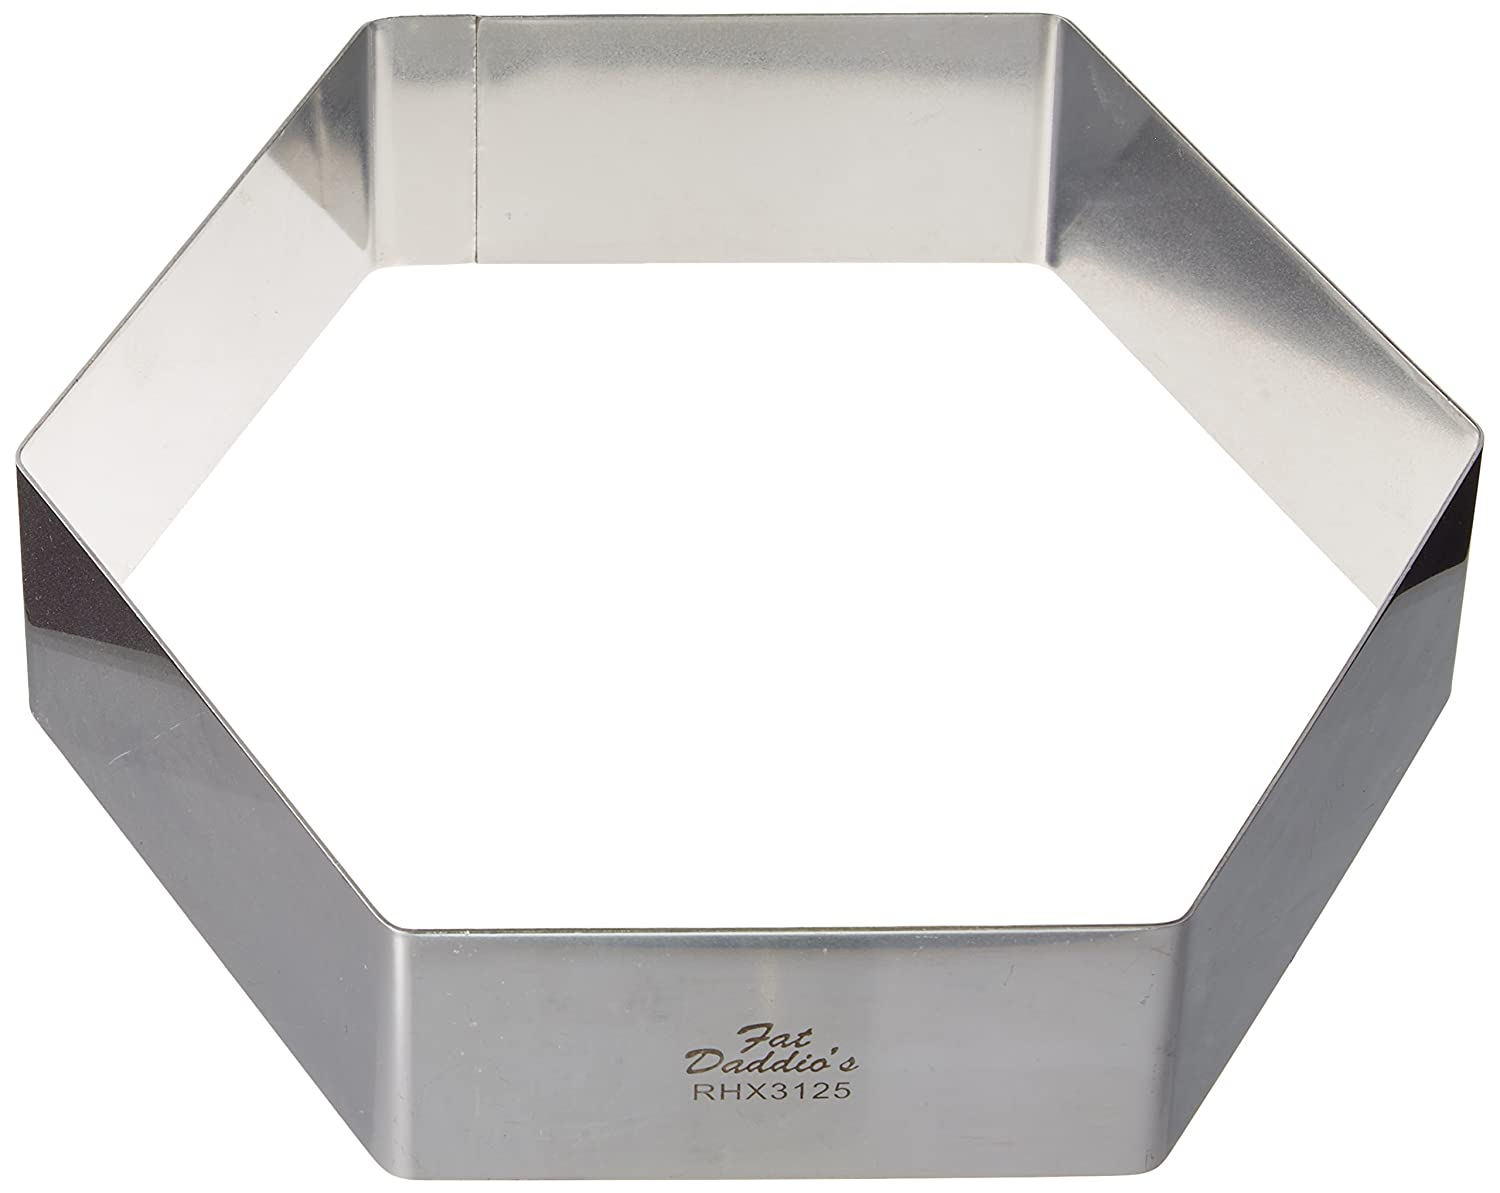 Fat Daddio's Stainless Steel Hexagon Cake and Pastry Ring, 2.125 Inch x 1.25 Inch Fat Daddio's RHX-3113